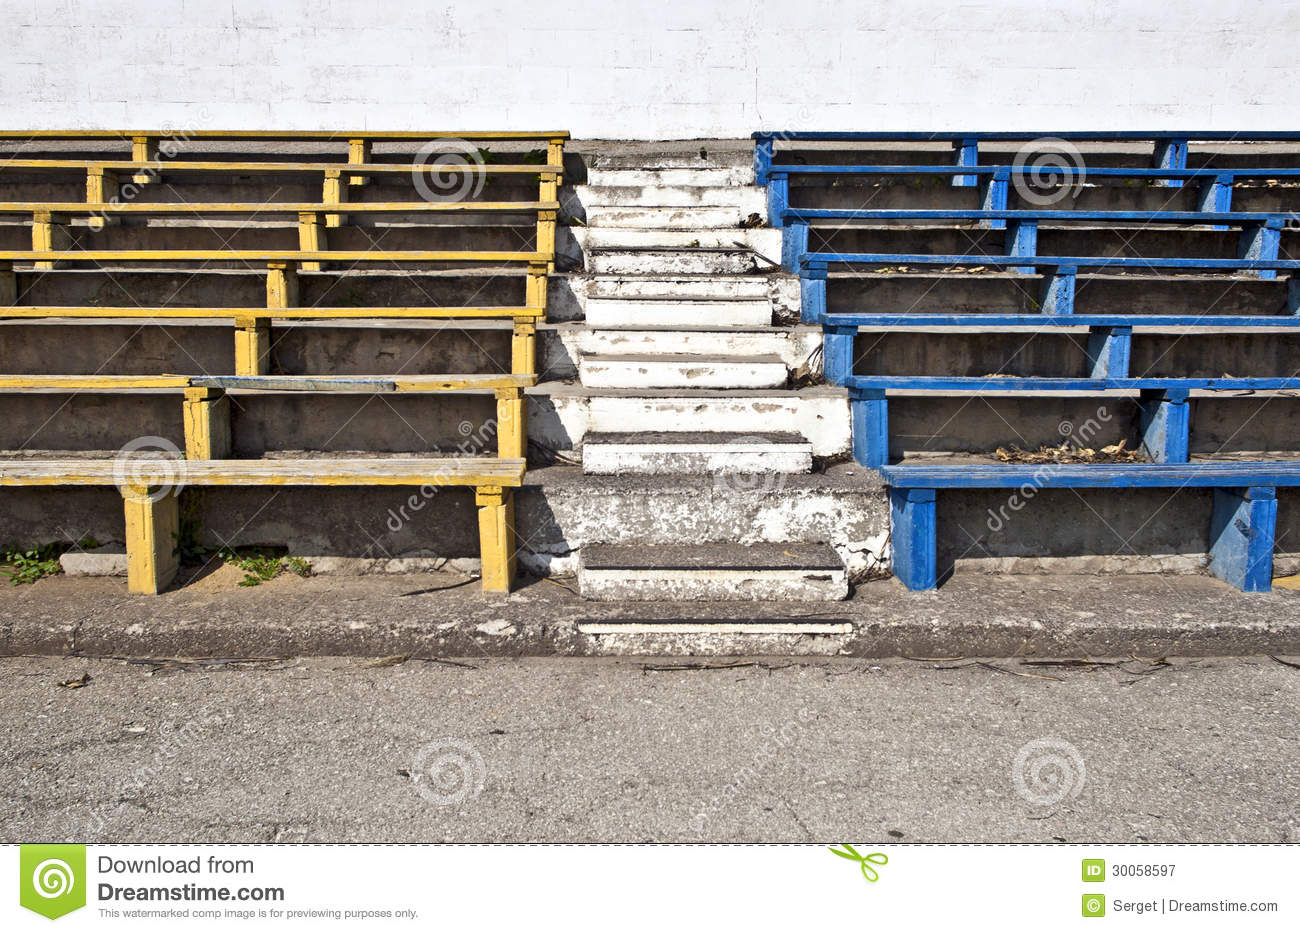 old stadium benches royalty free stock photography - image: 30058597